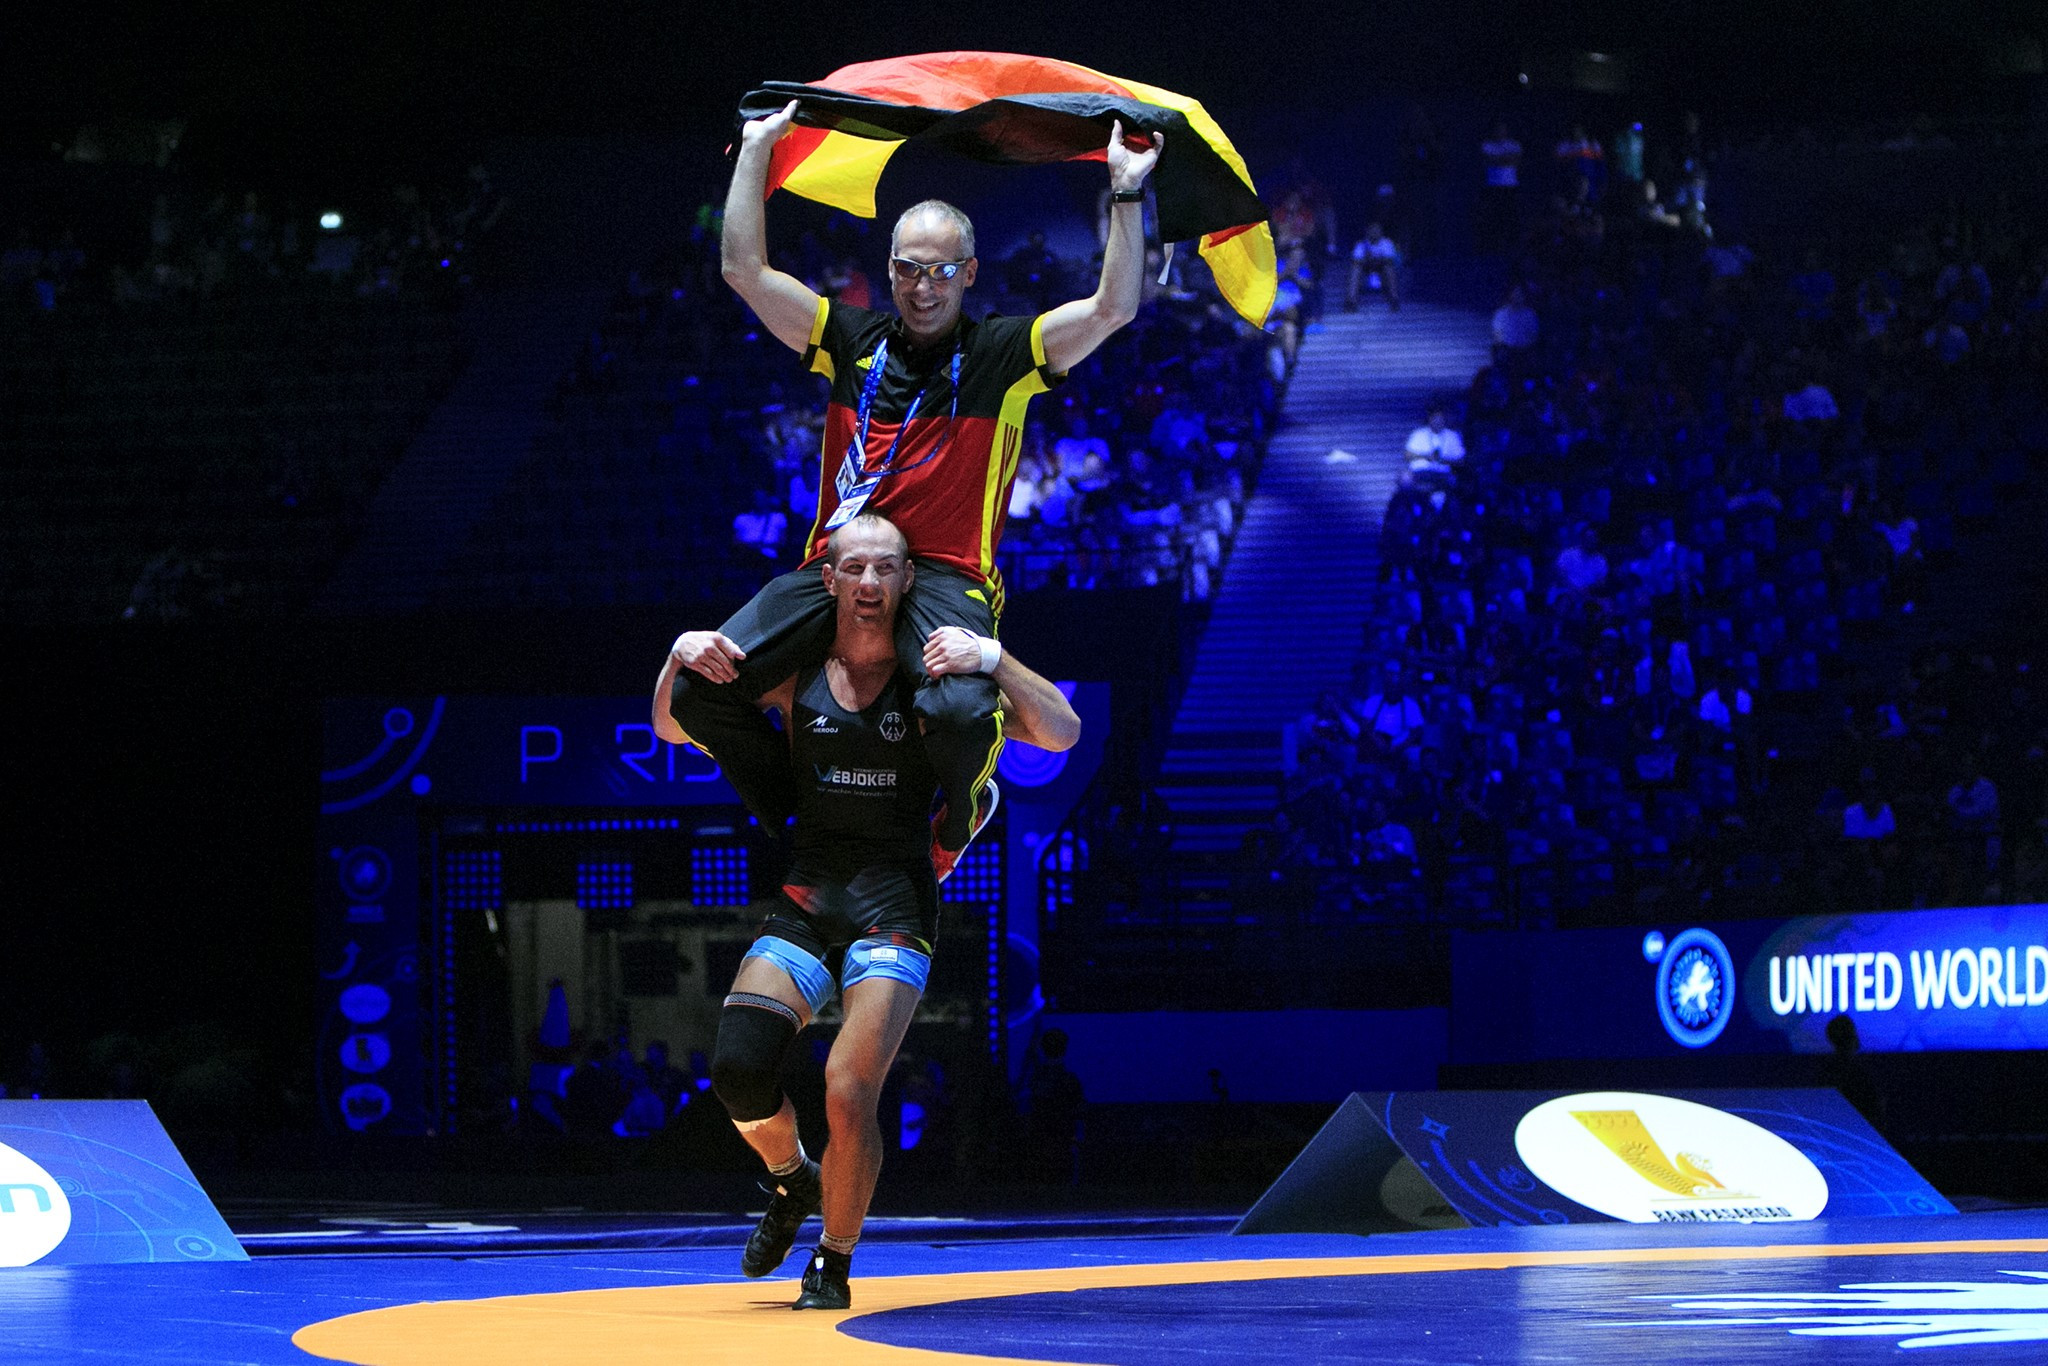 Stäbler celebrated his victory at 71kg along with his coach ©UWW